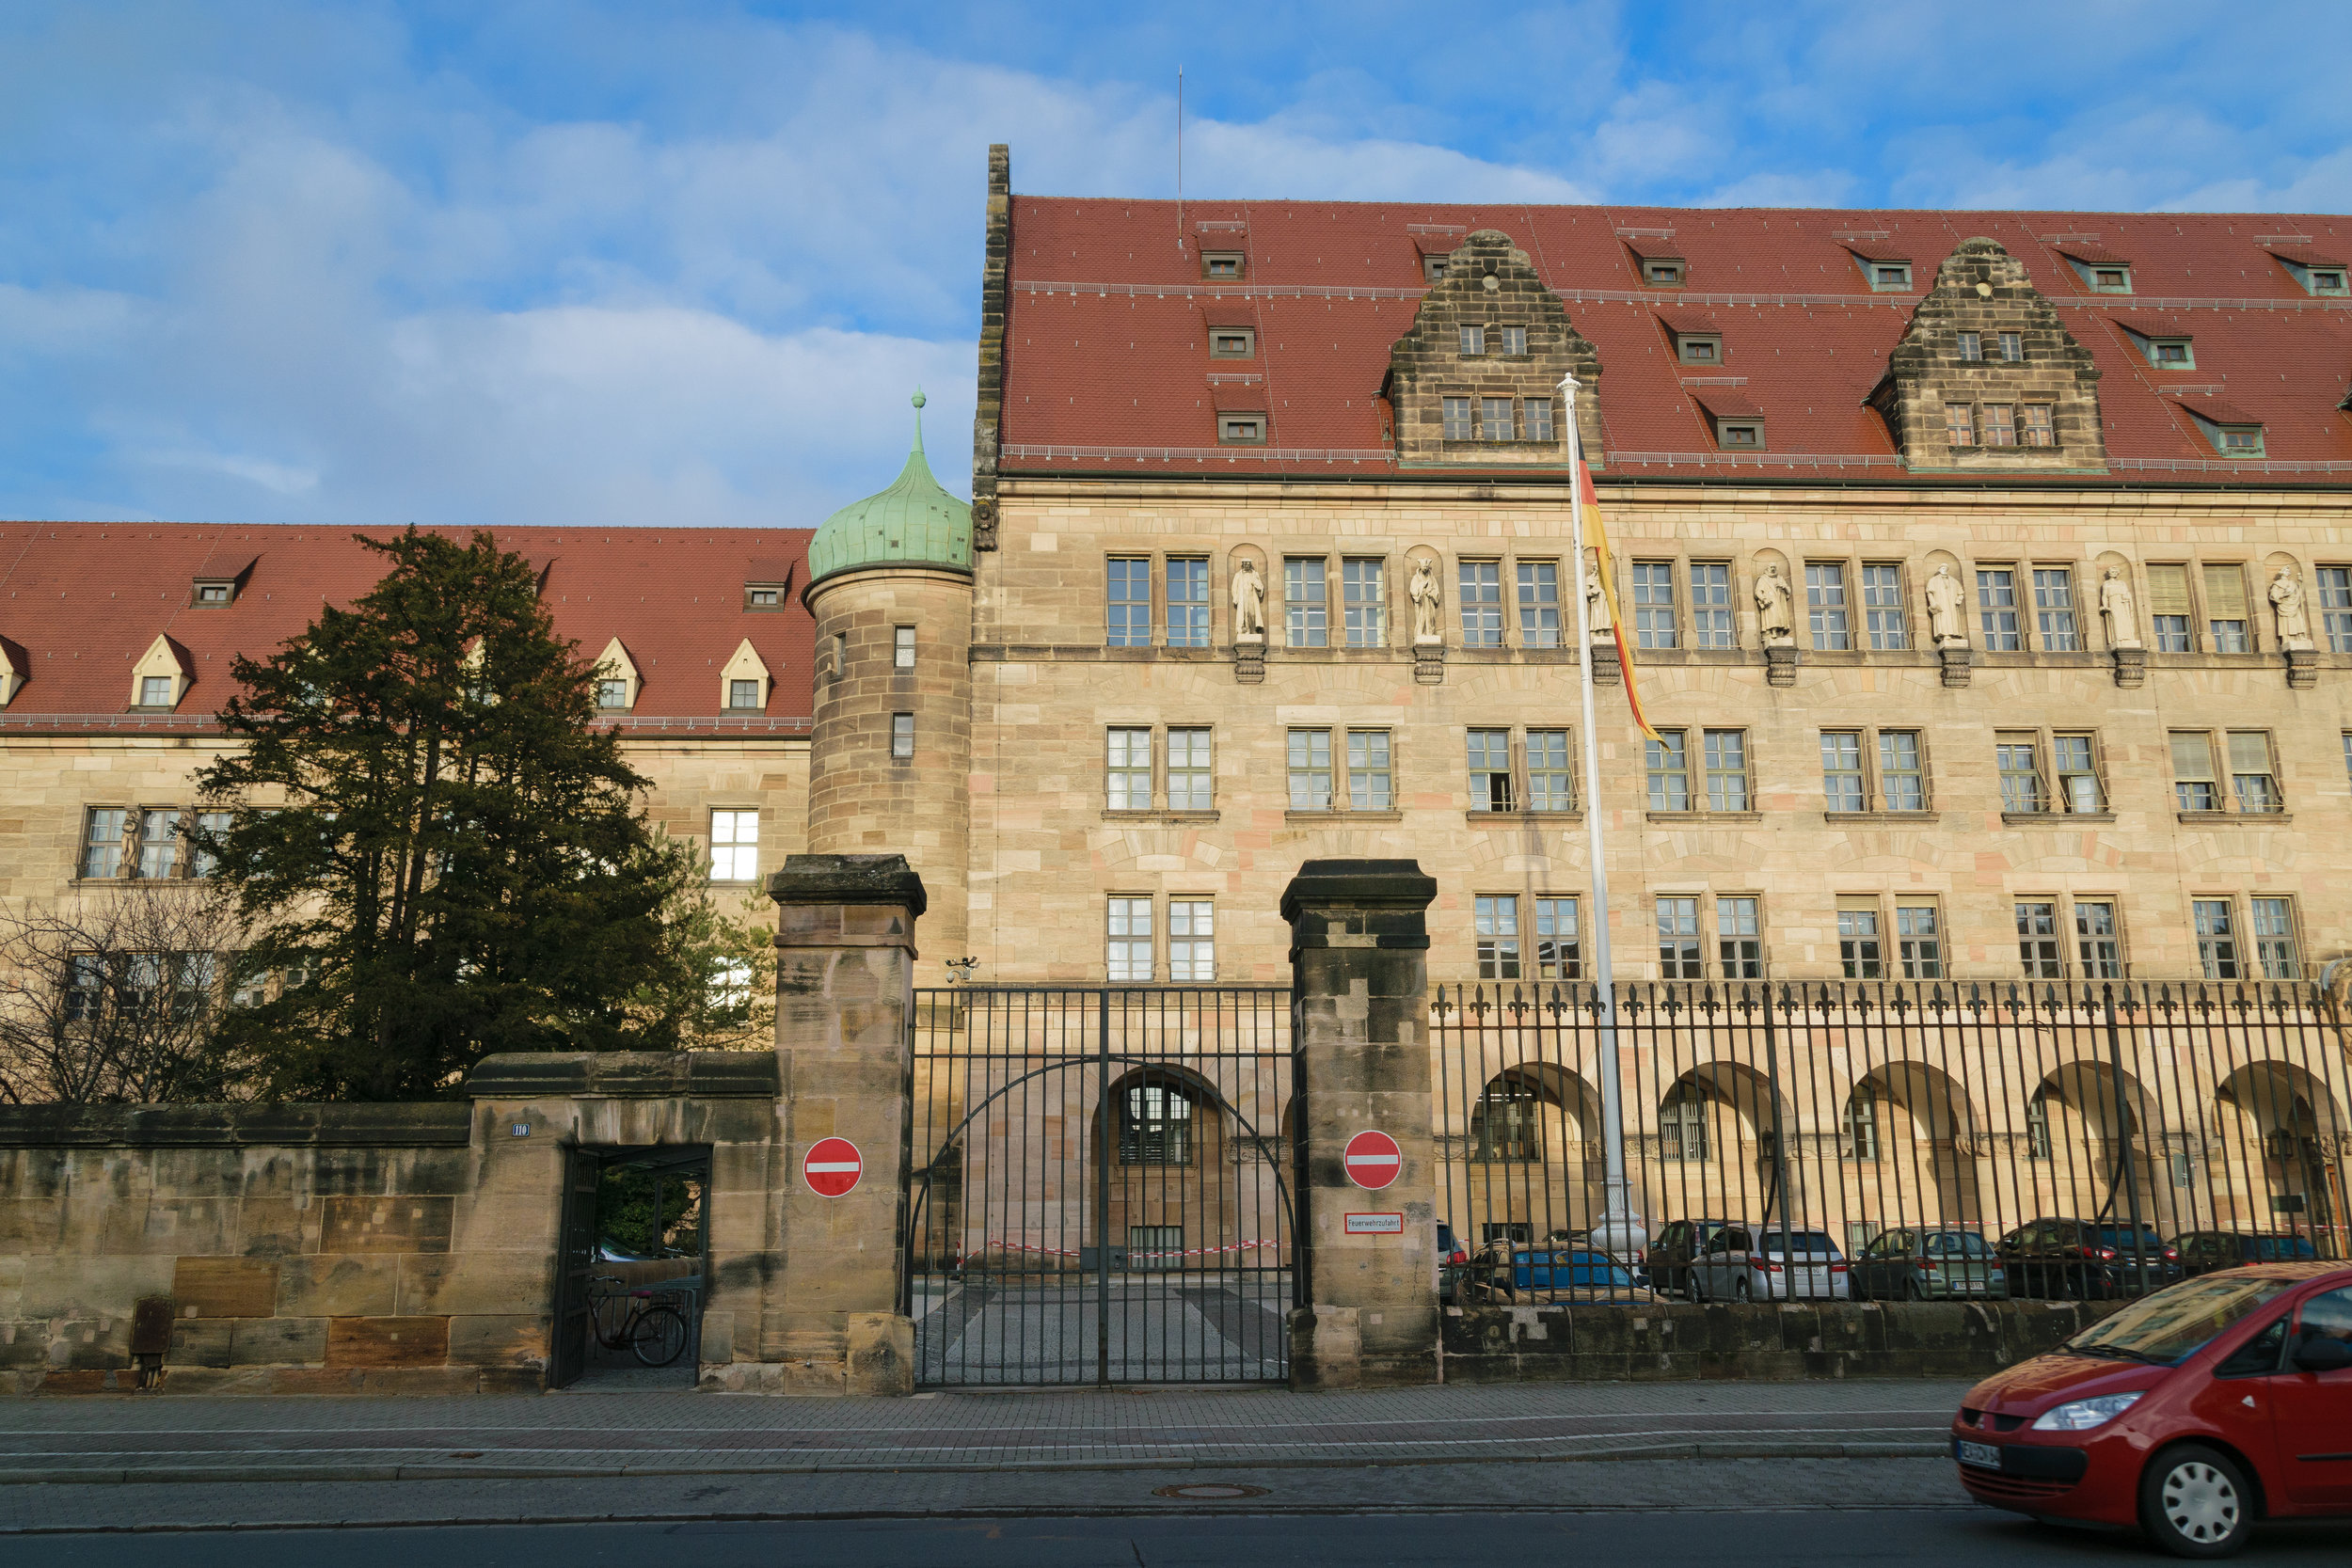 part of Justizpalast where Nuremberg trials occurred